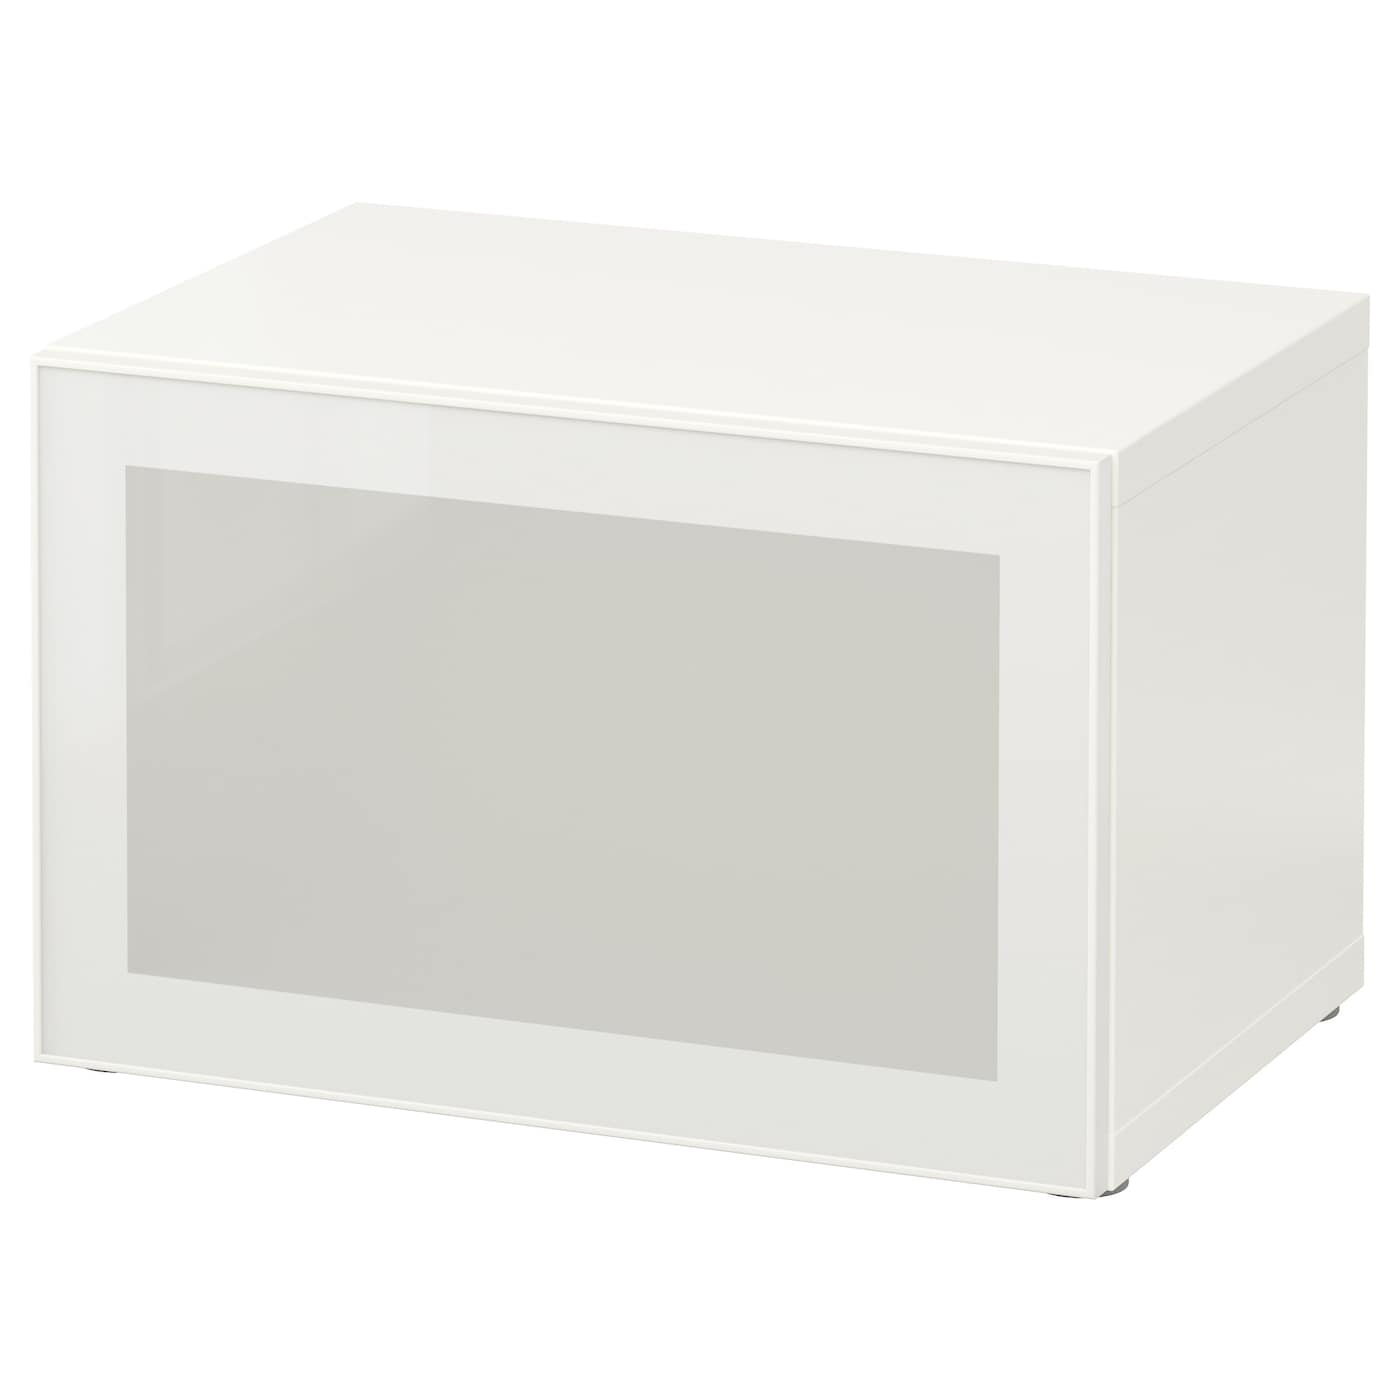 best shelf unit with glass door white glassvik white frosted glass 60x40x38 cm ikea. Black Bedroom Furniture Sets. Home Design Ideas